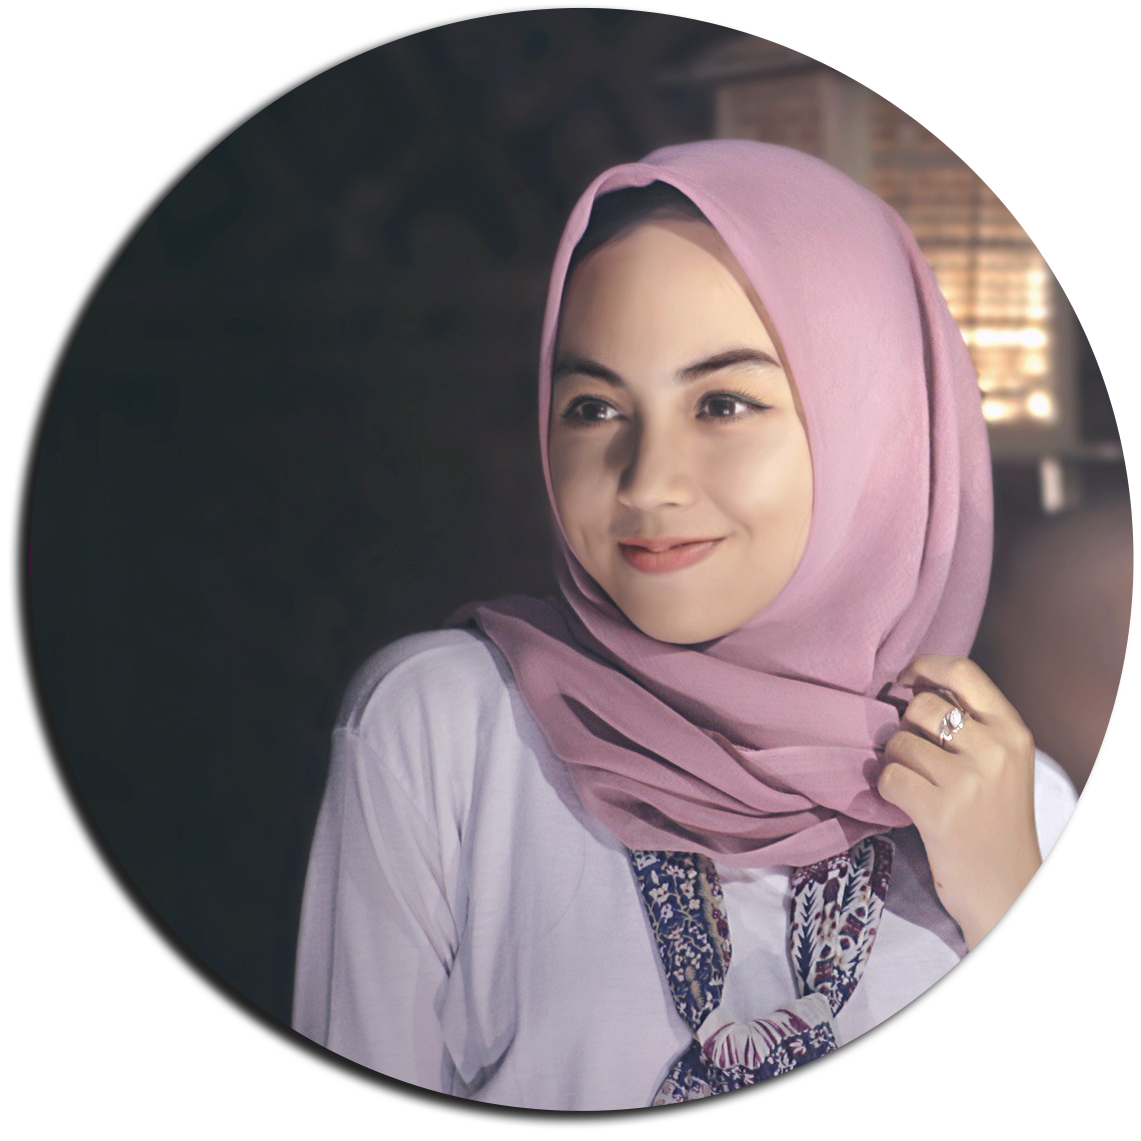 girl-with-hijab.png